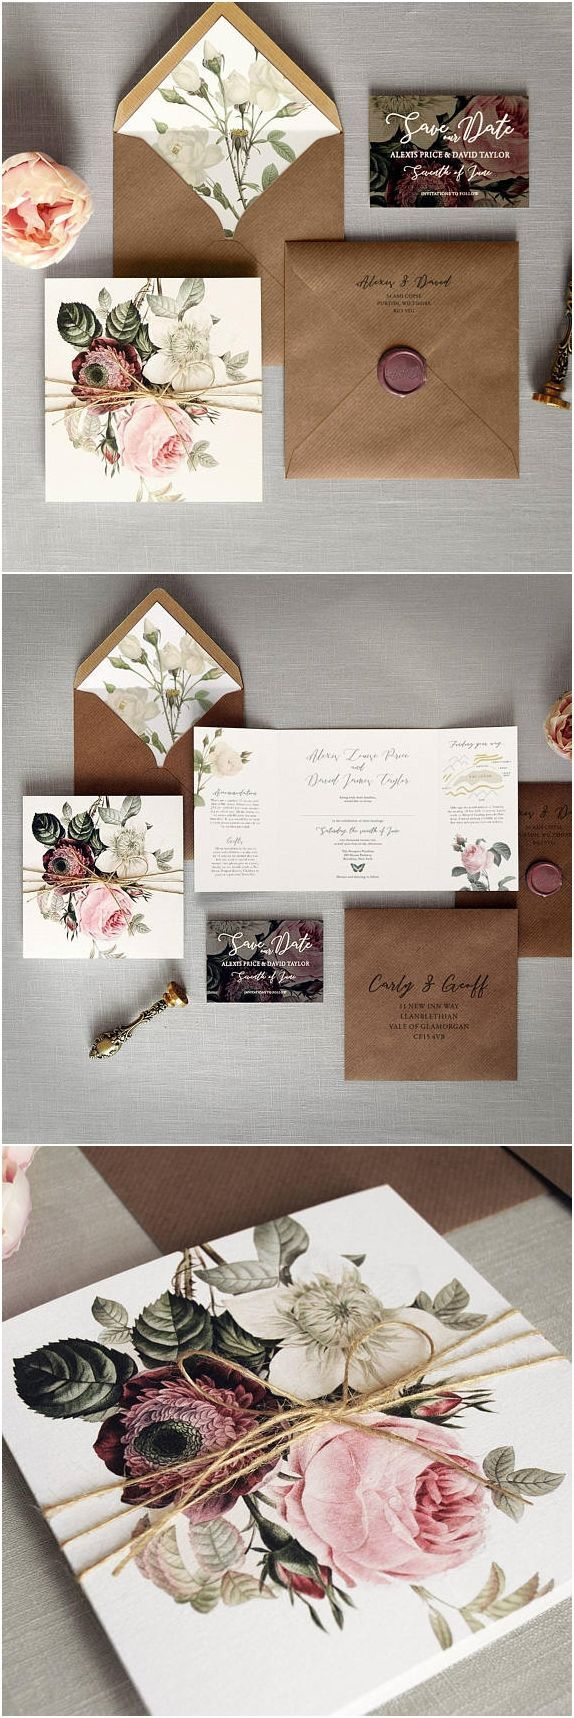 cruise wedding save the date announcement%0A English Garden  Luxury Folding Wedding Invitations  u     Save the Date  Rustic  twine  woodland